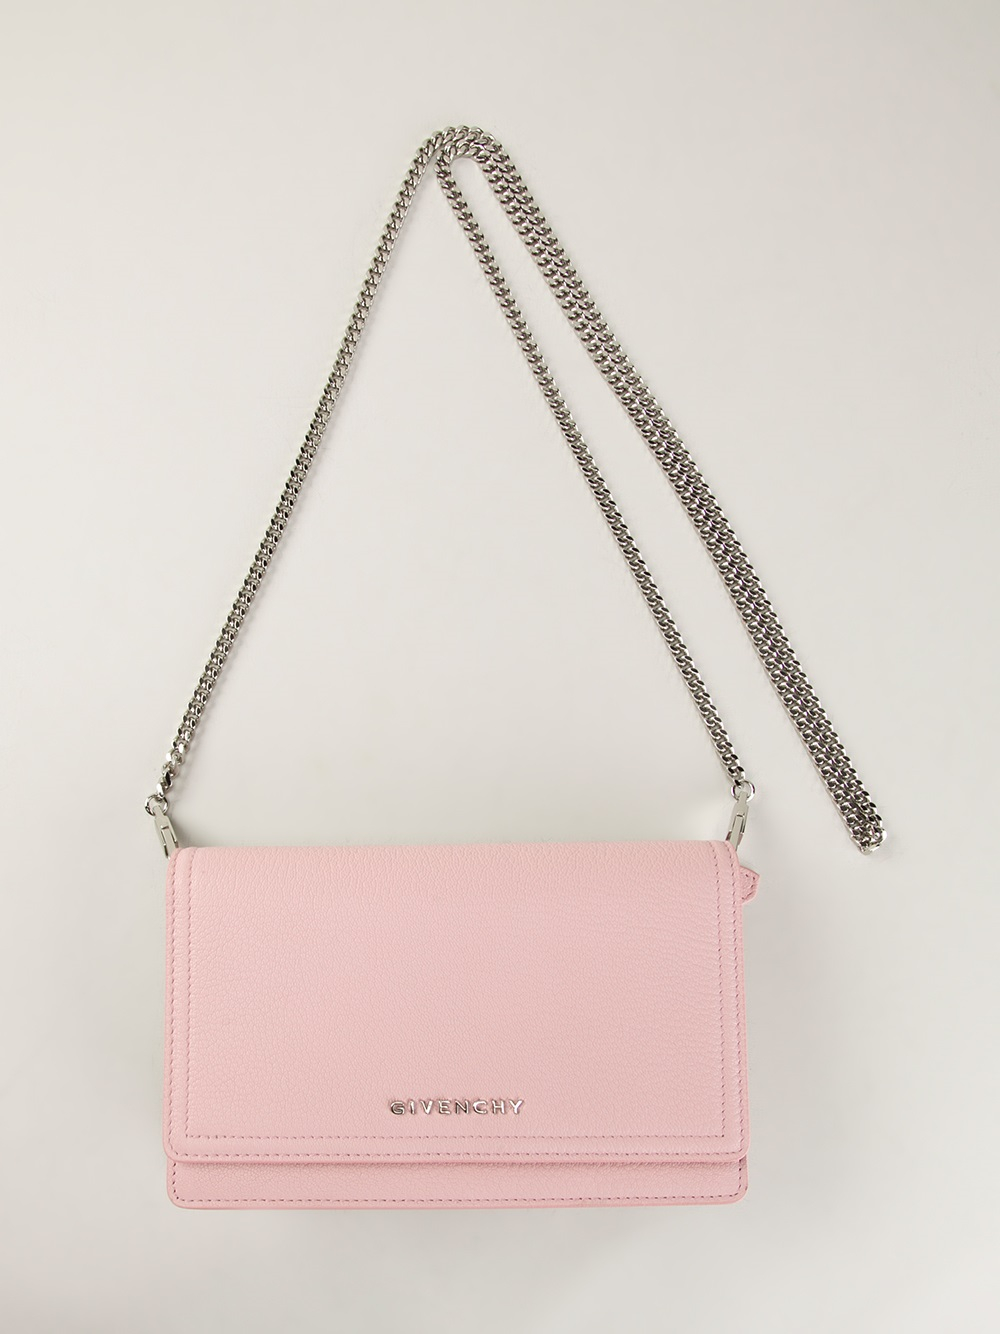 Givenchy Pandora Mini Shoulder Bag in Pink - Lyst c28da89578357